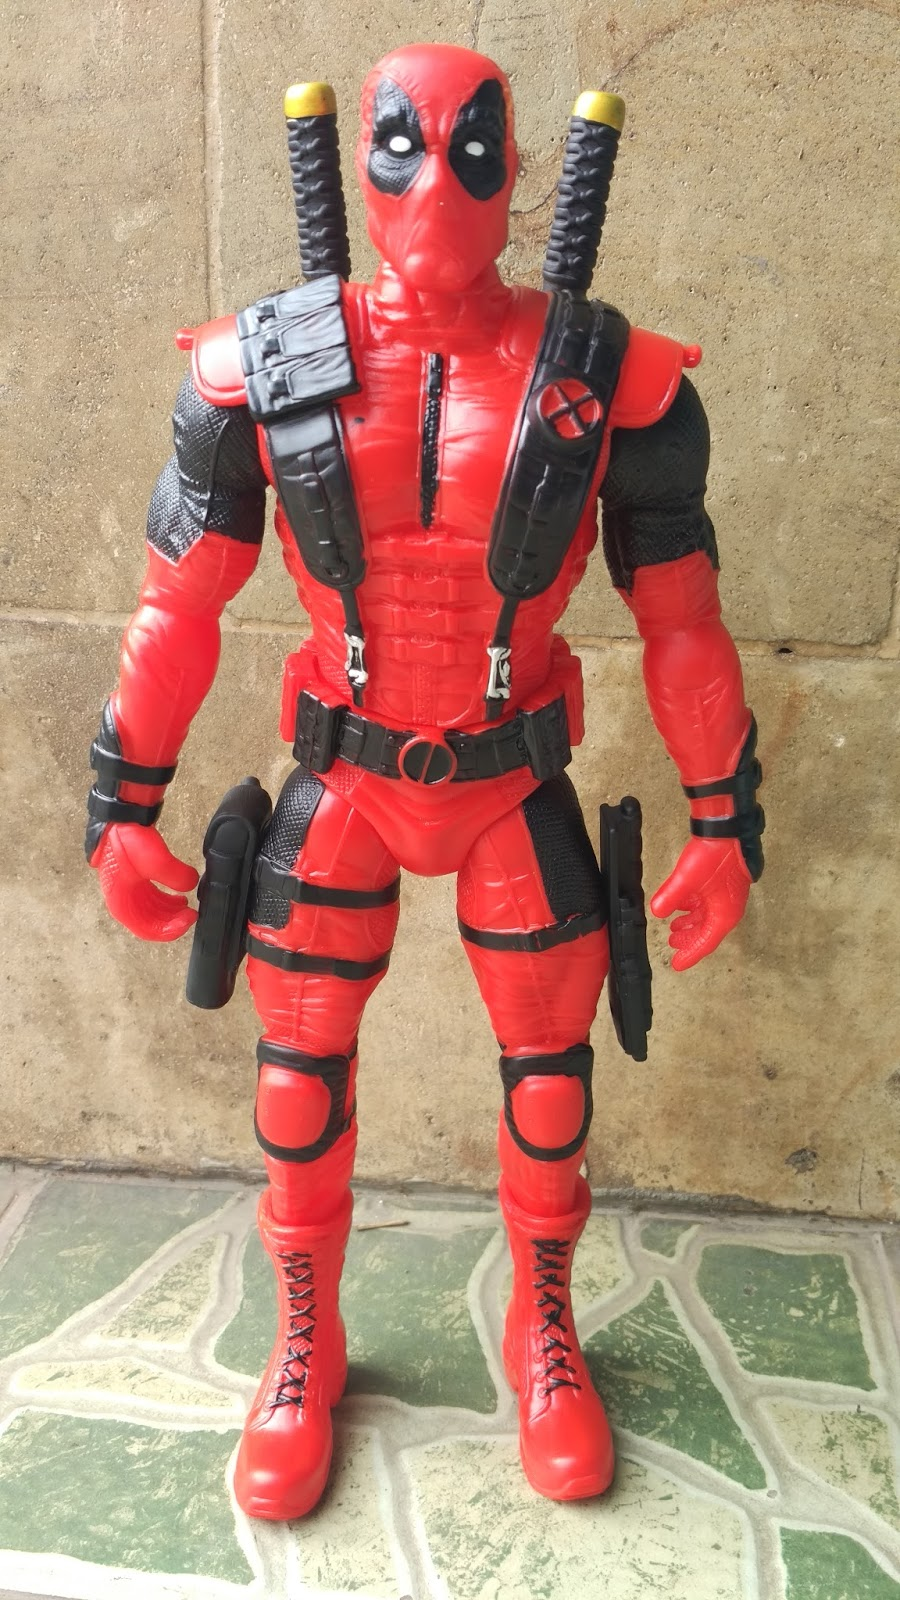 pernak pernik deadpool; pernak pernik superhero; pernak pernik unik; action figure deadpool; action figure grosir; pernak pernik figure